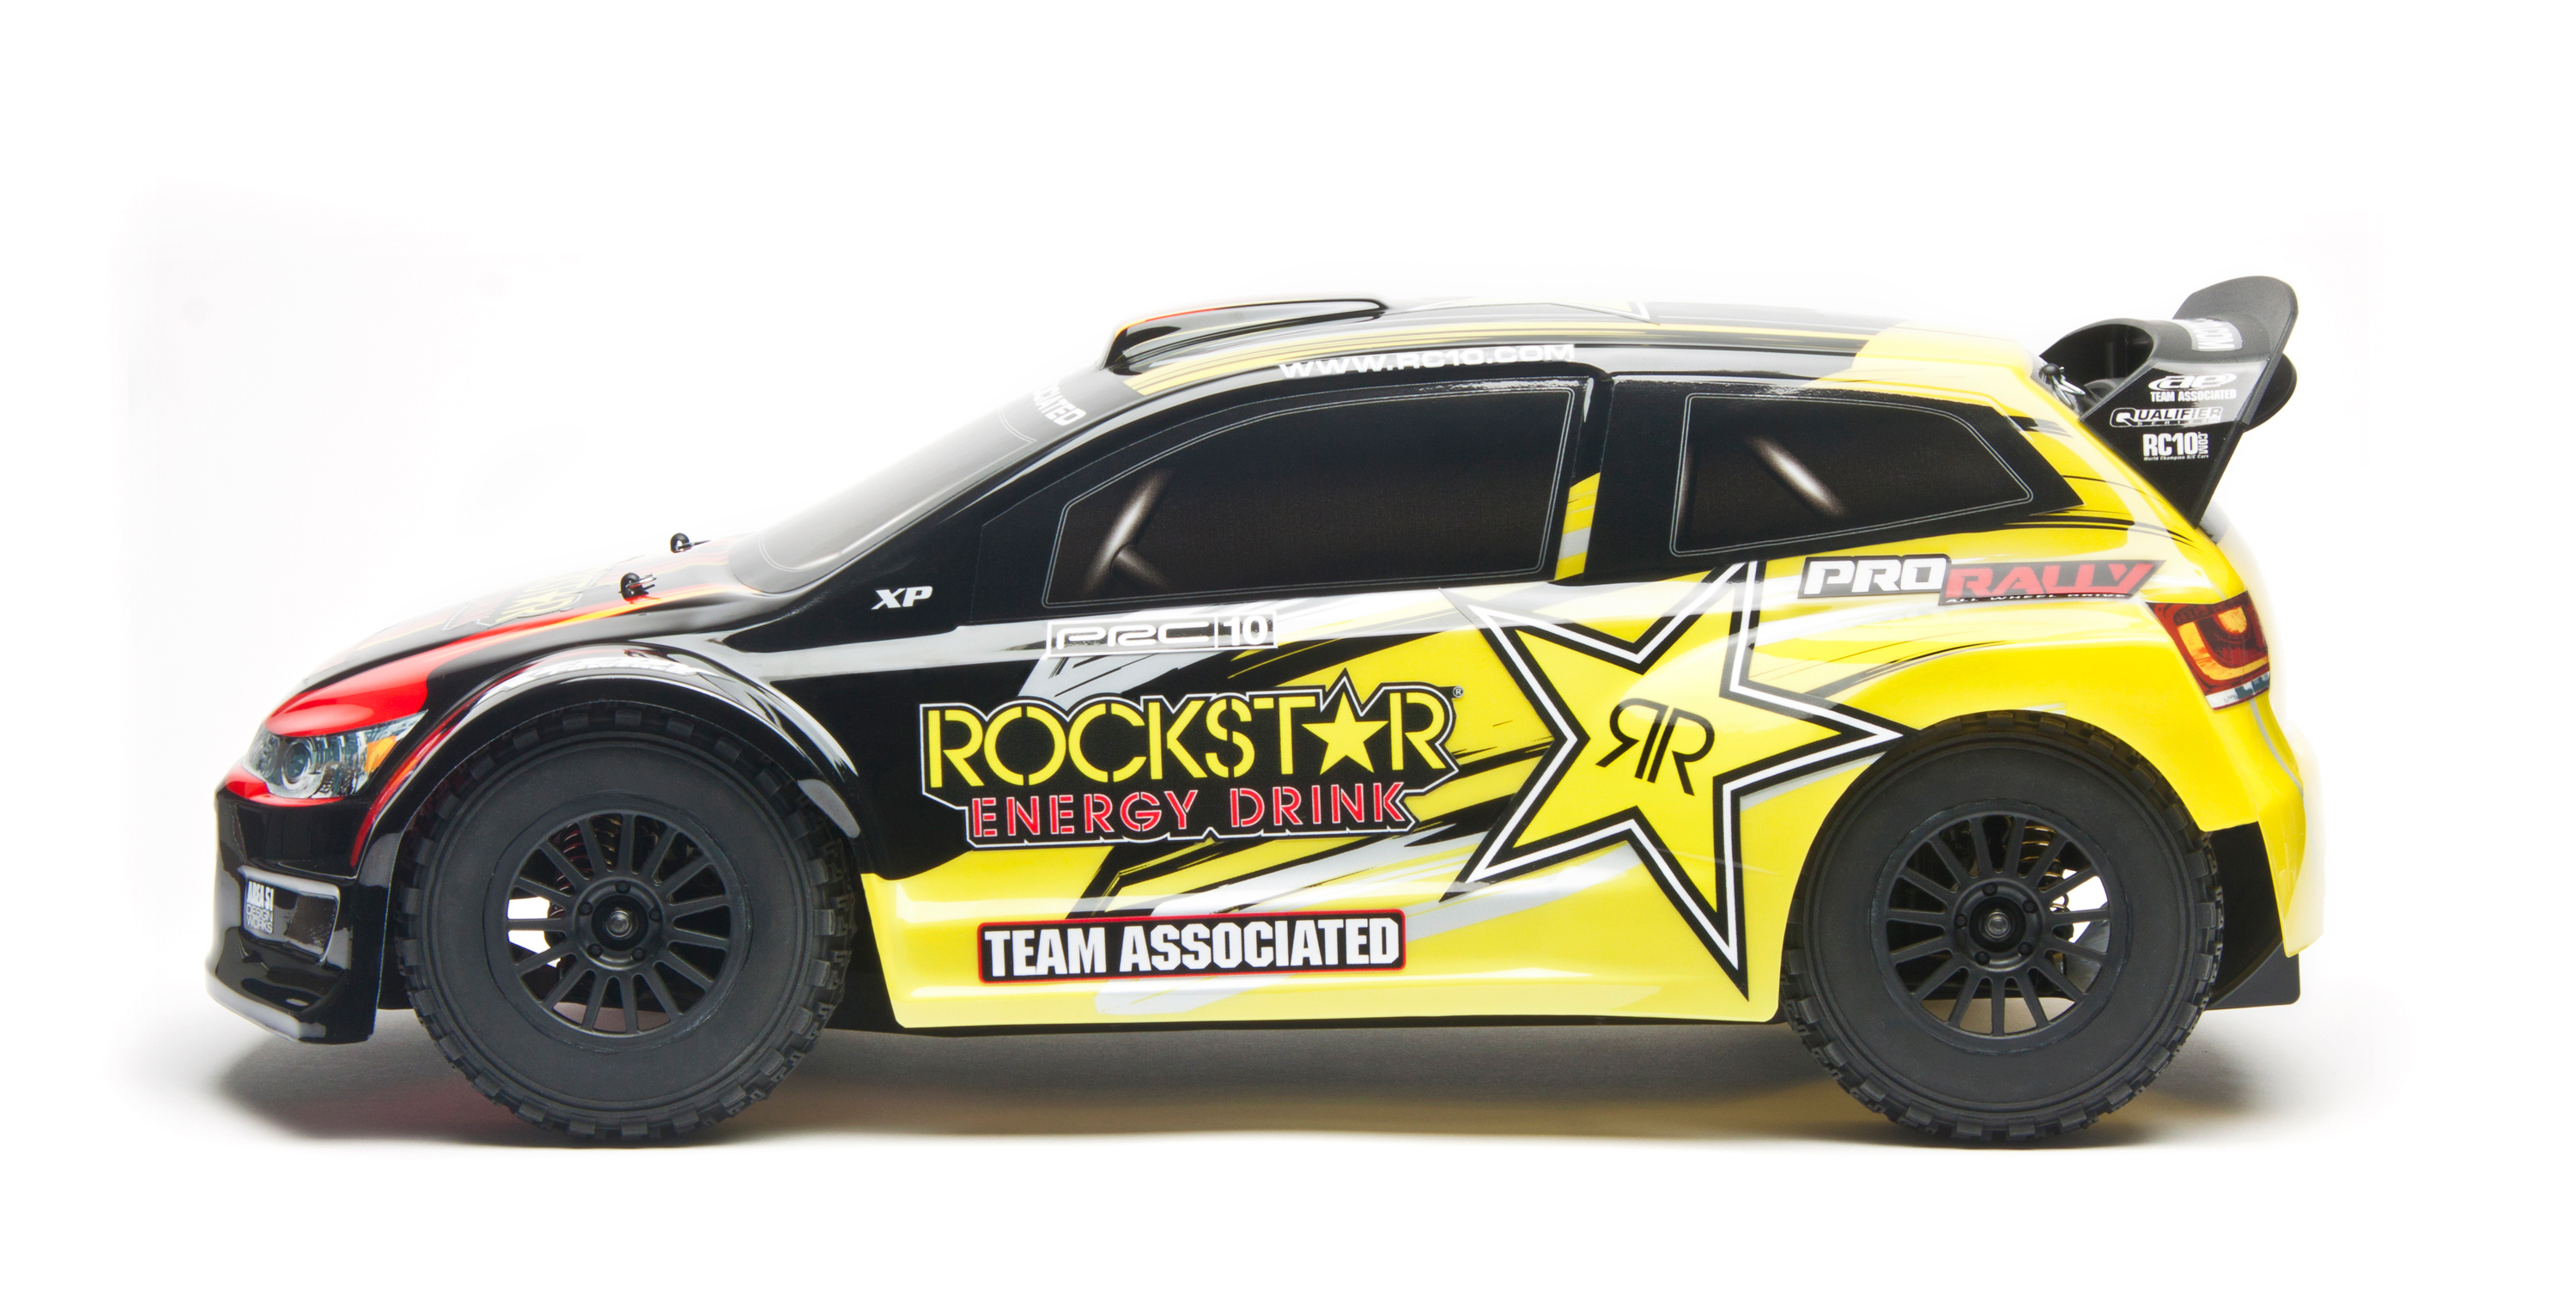 new rc car releasesTeam Associated Releases a new RadioControlled Car Model for its